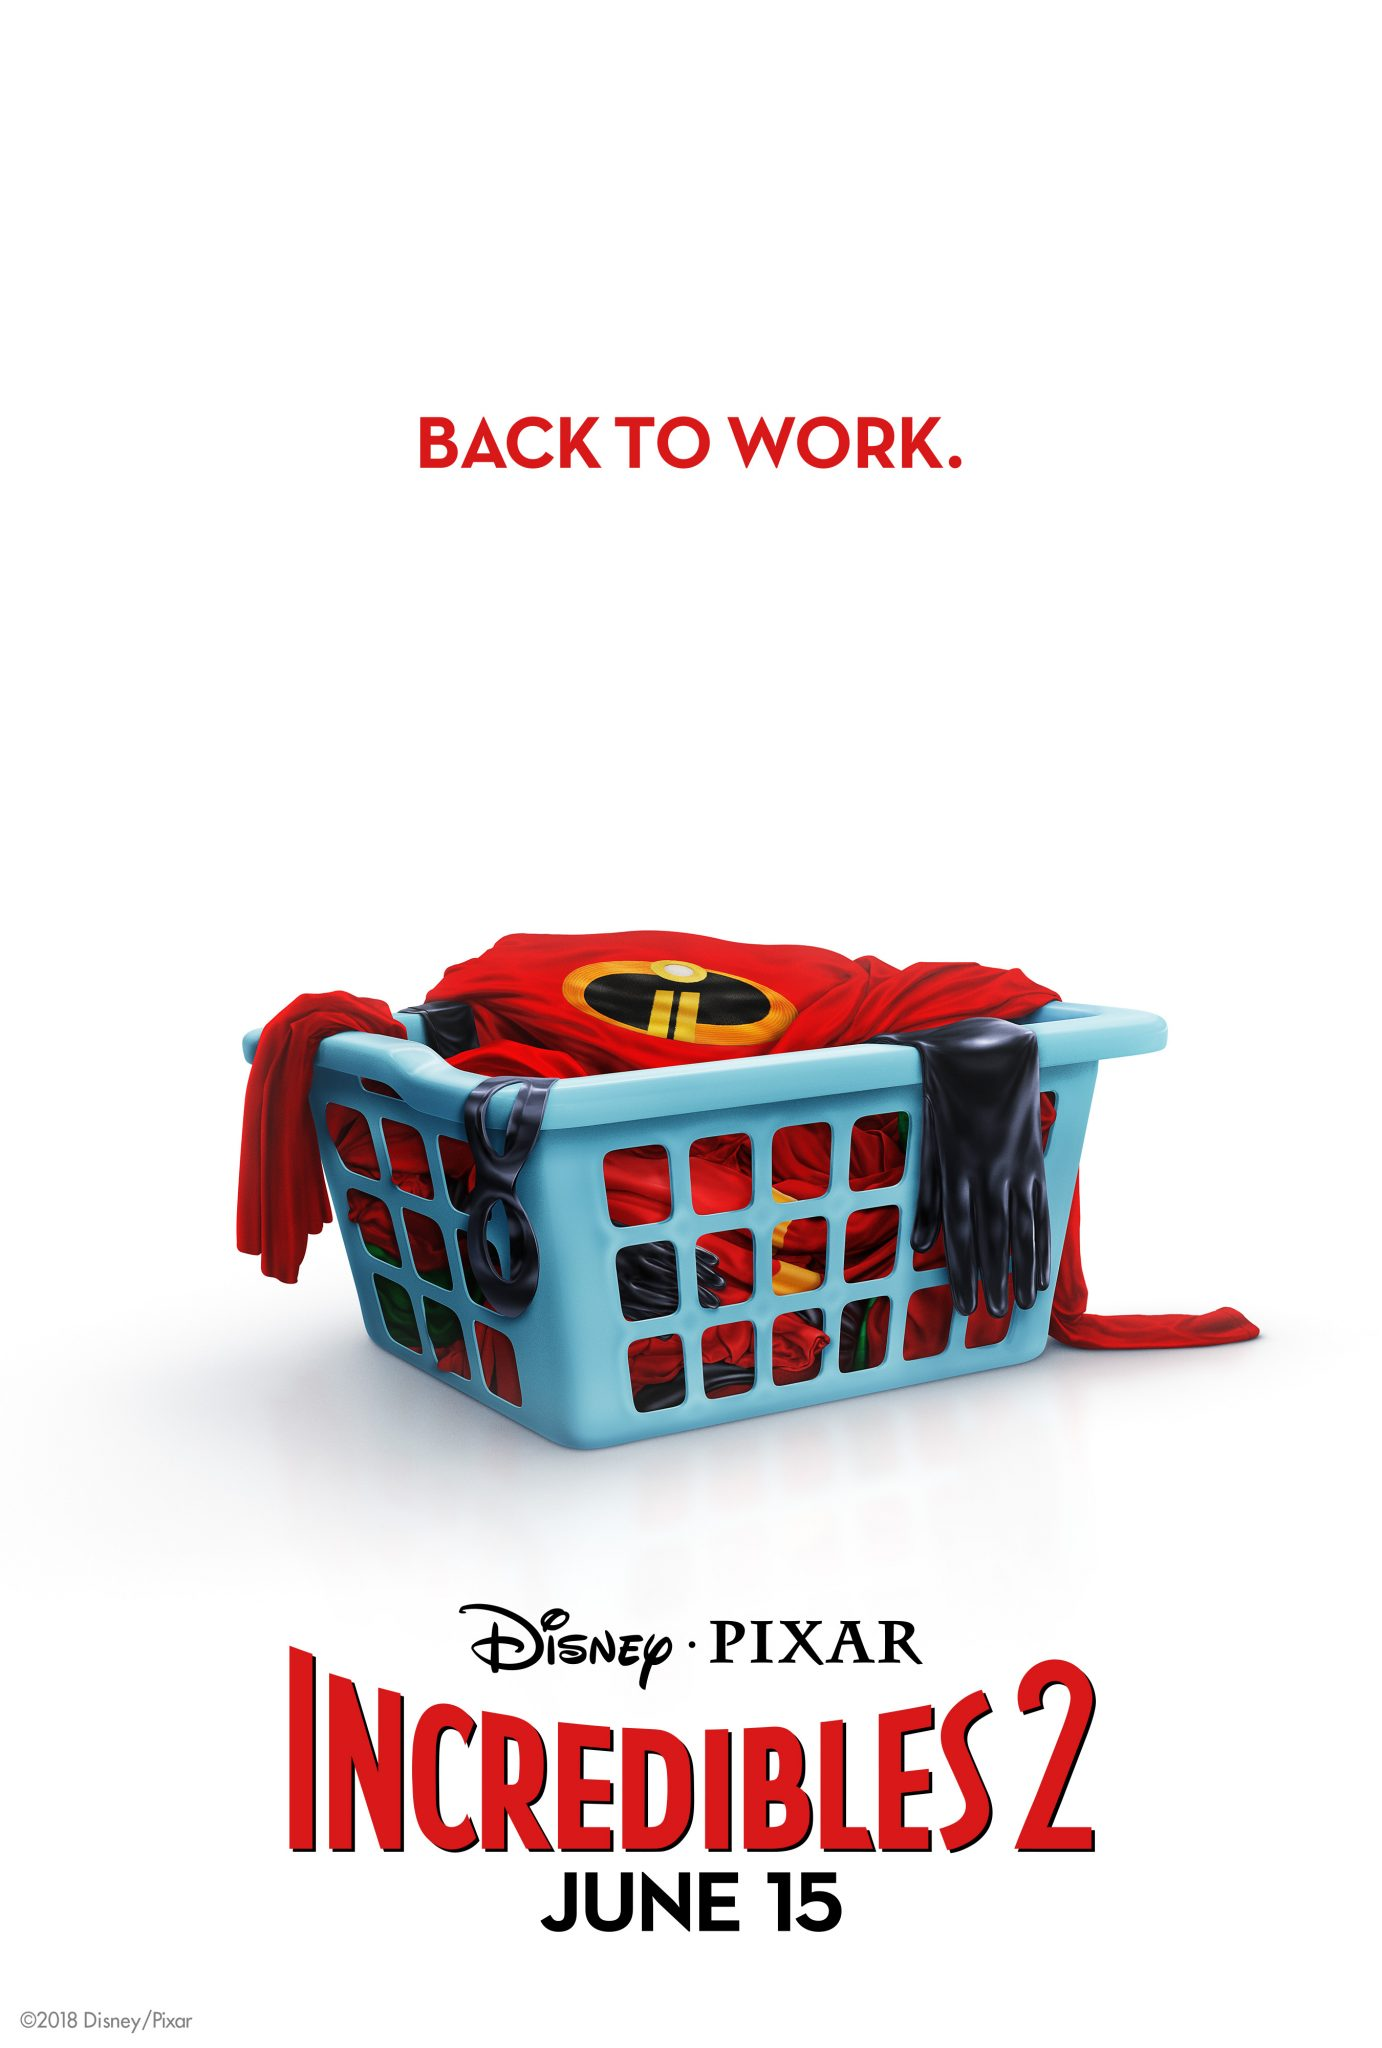 Incredibles2 Back To Work